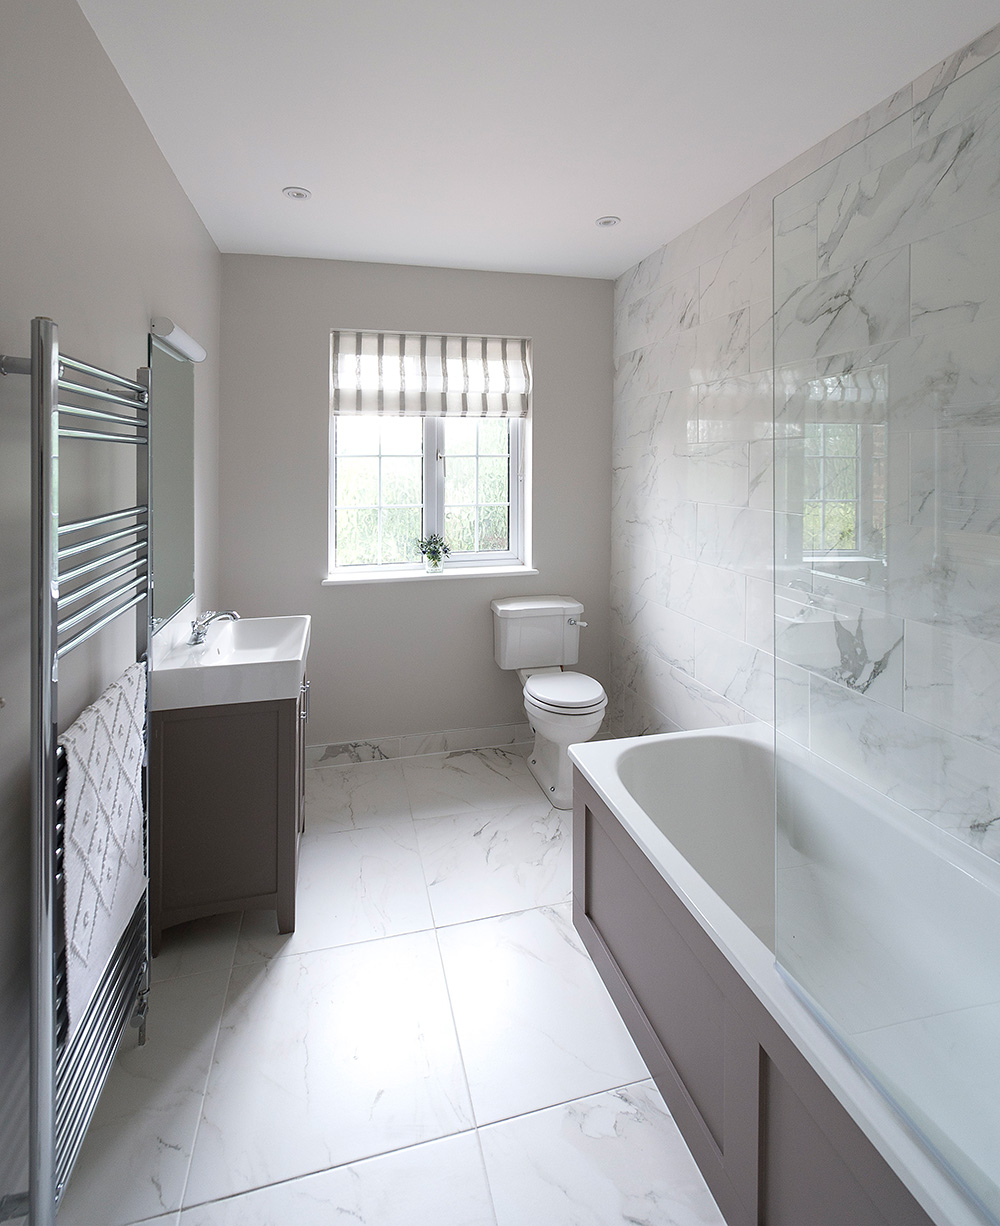 small bathroom interior design, renovation, Nikkirees.com, wimbledon interior designer, london and surrey interior design practice